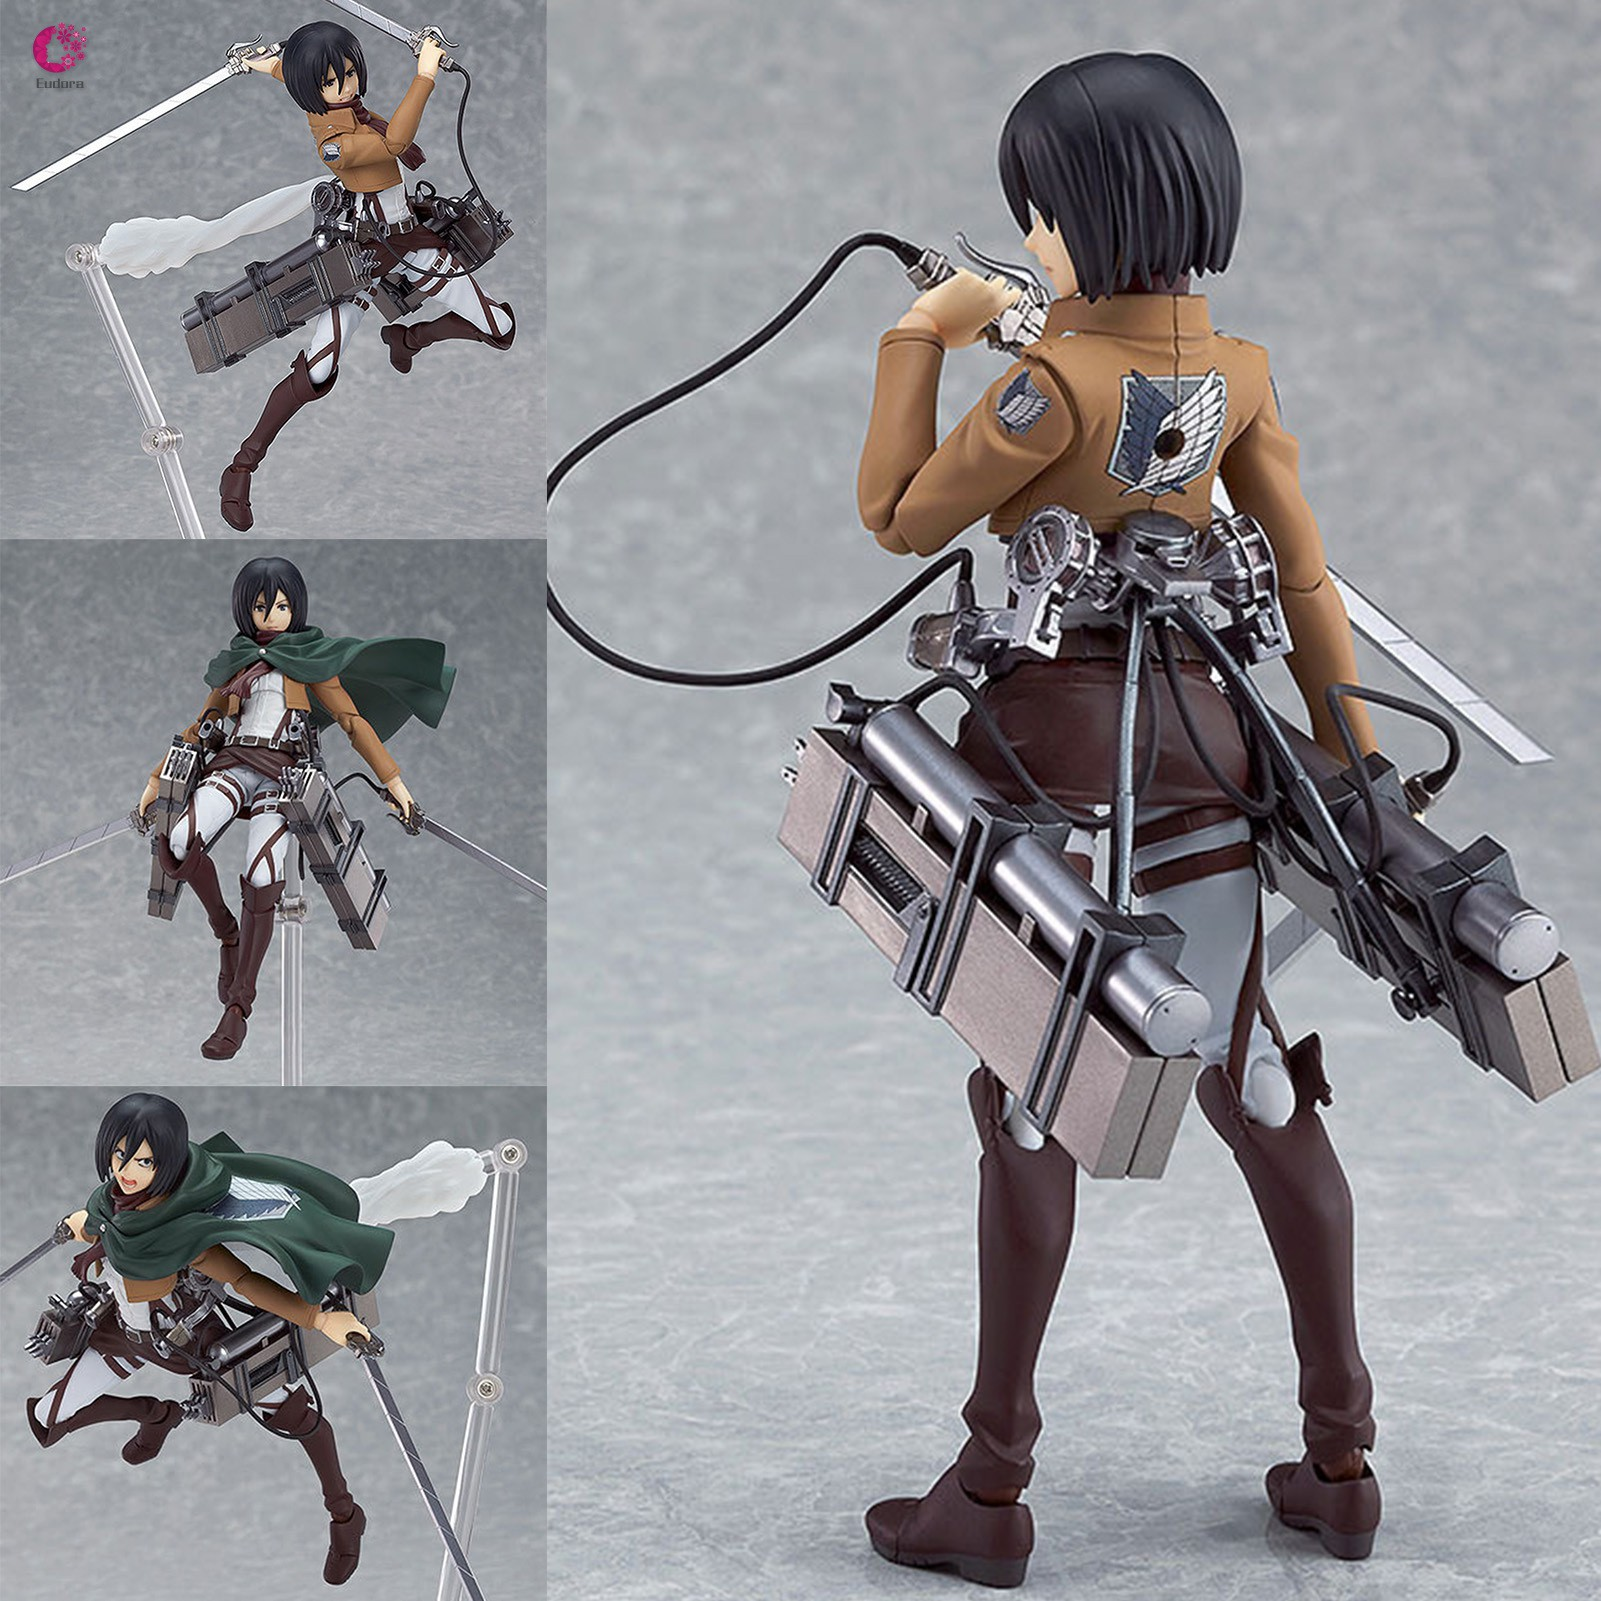 Attack on Titan Mikasa Ackerman PVC Figure Changeable Face Anime Action Figure Model Toy